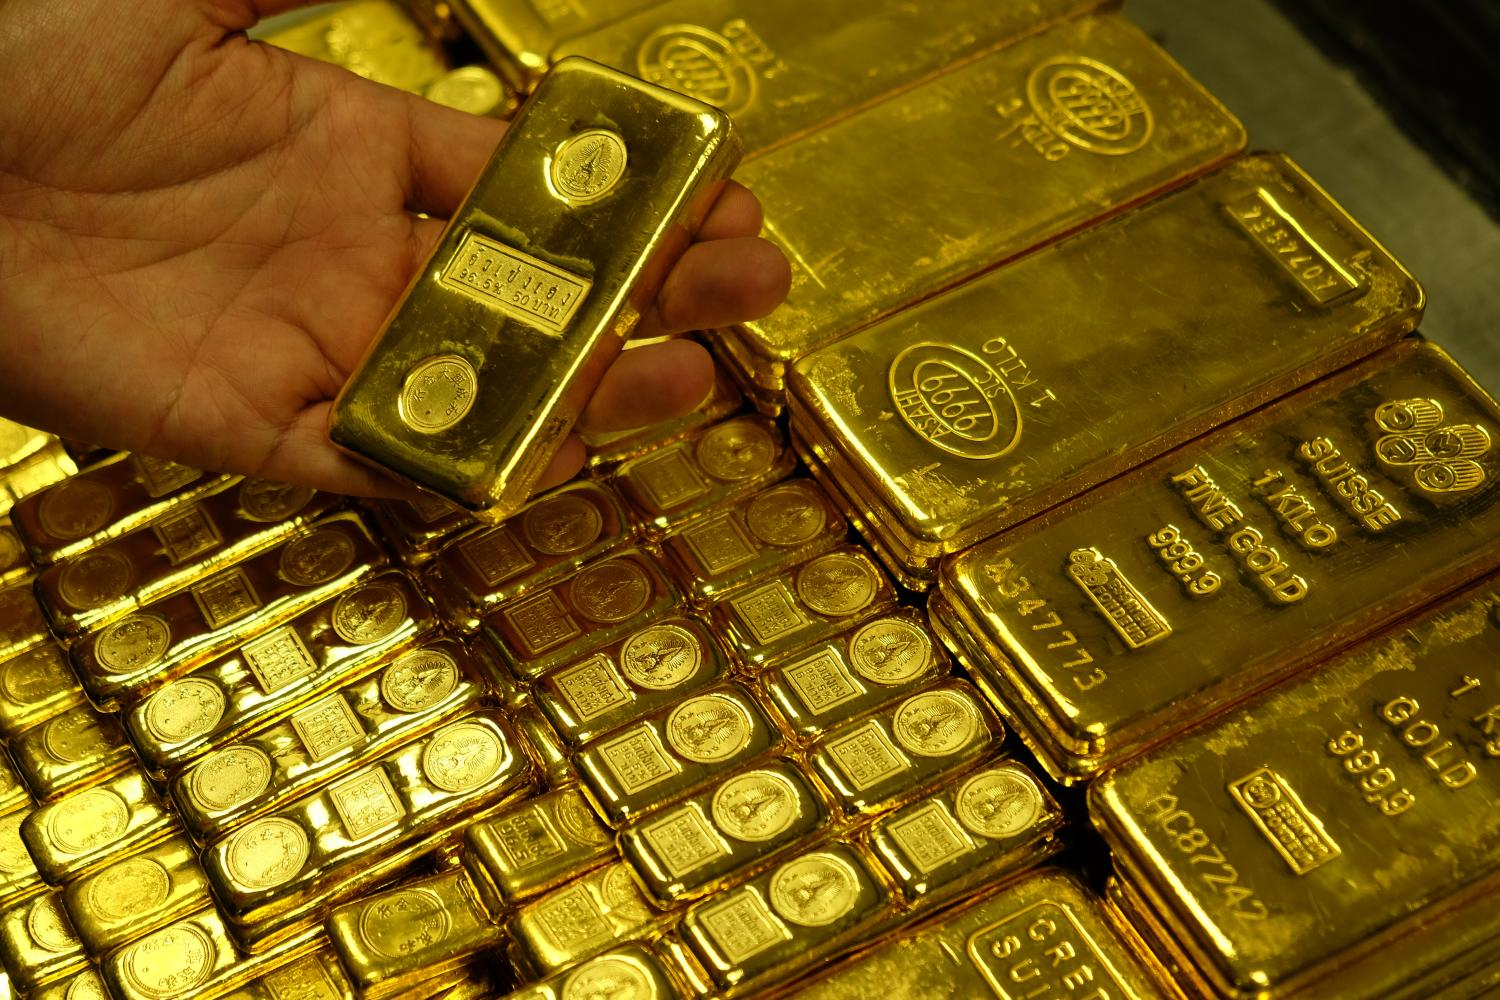 The night trading session for derivatives products referenced with gold will close at 3am, possibly starting in next year's first quarter.